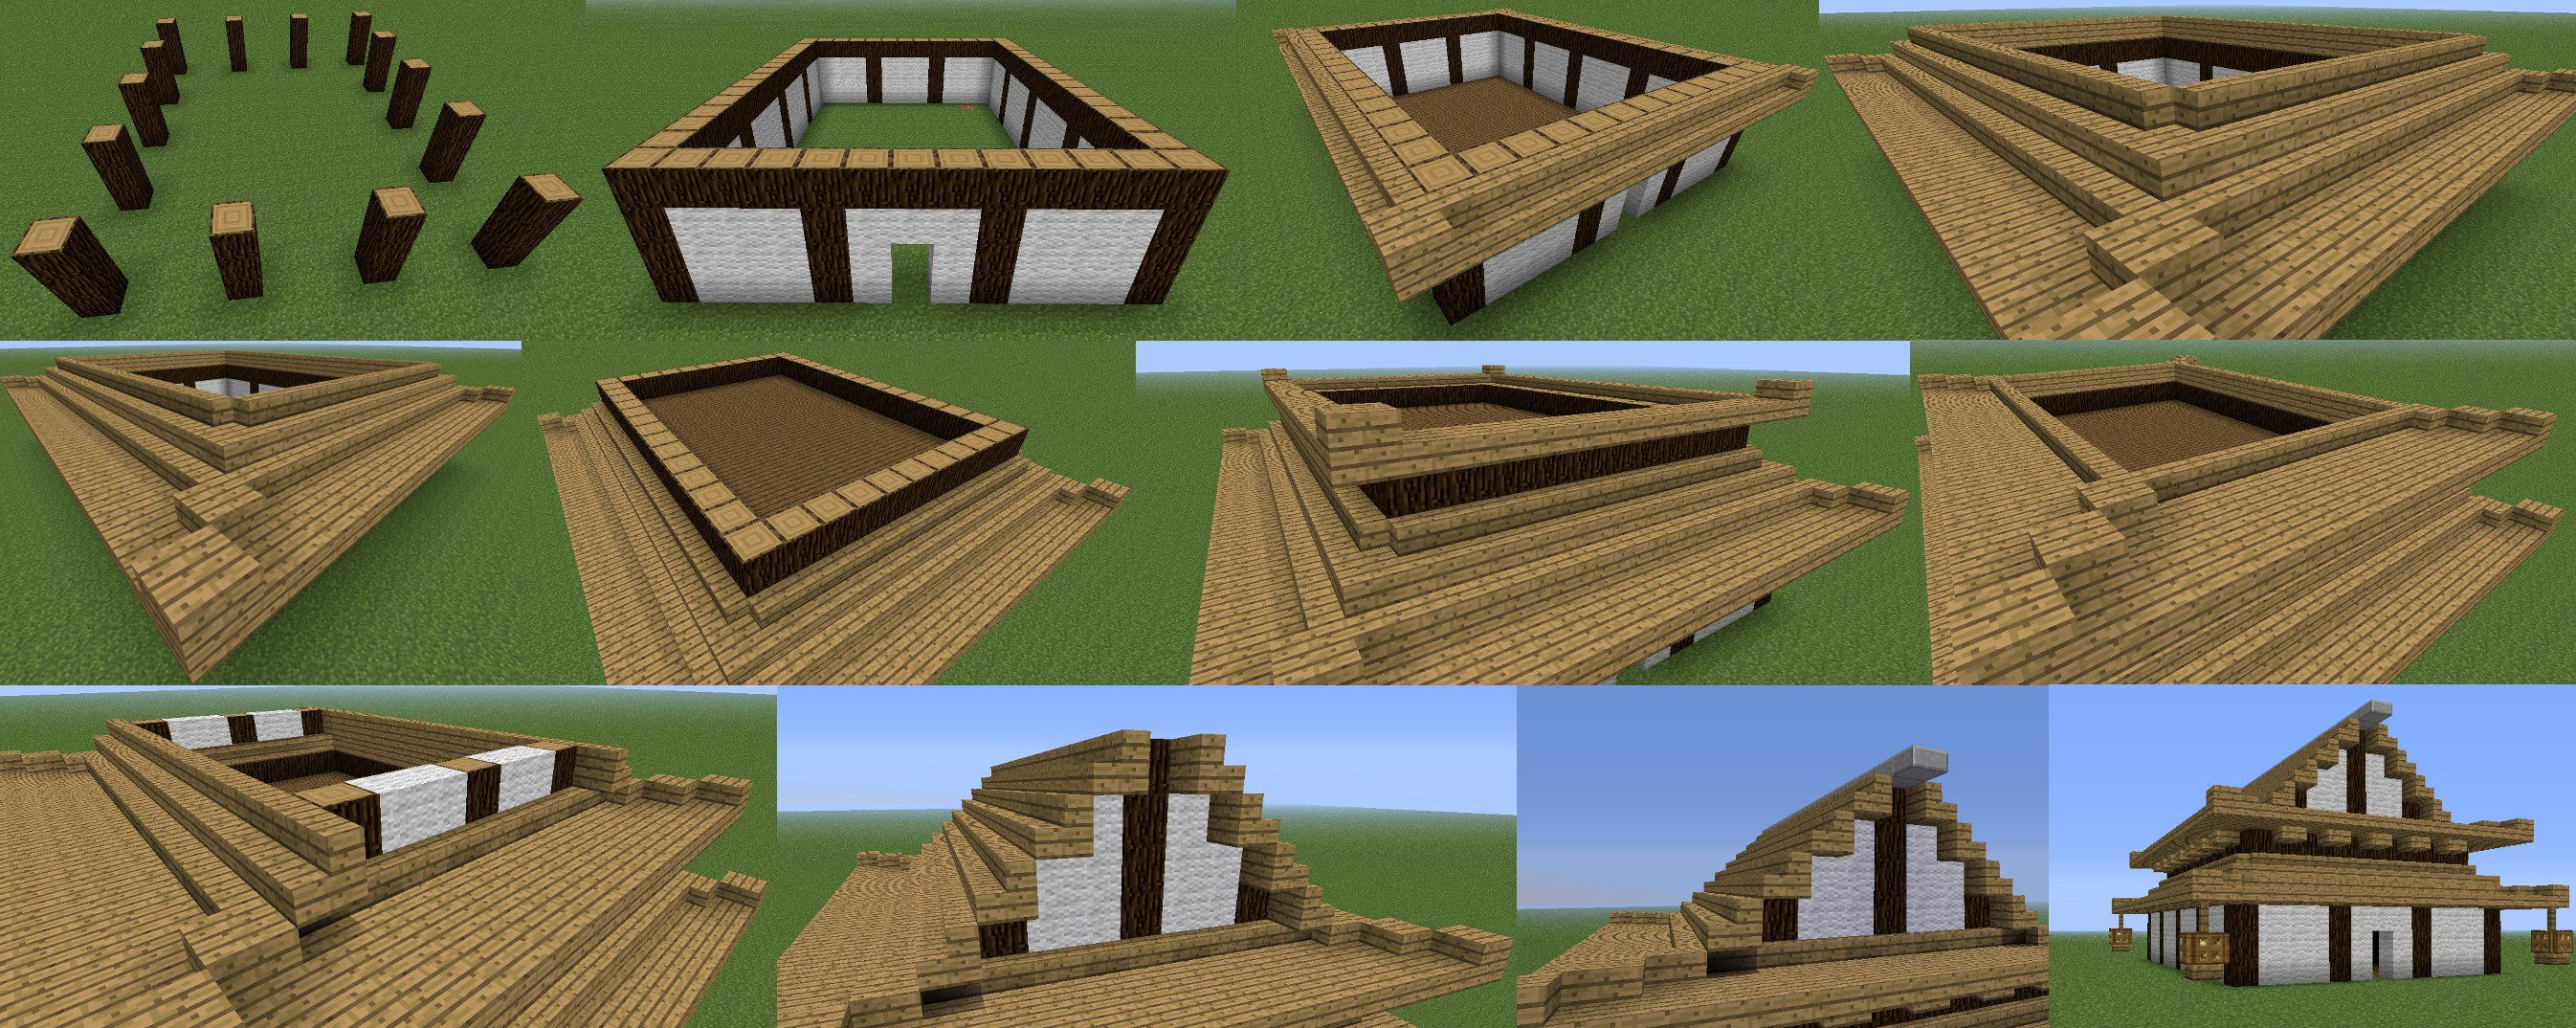 Japanese building style in minecraft minecraft guides for Building a house step by step